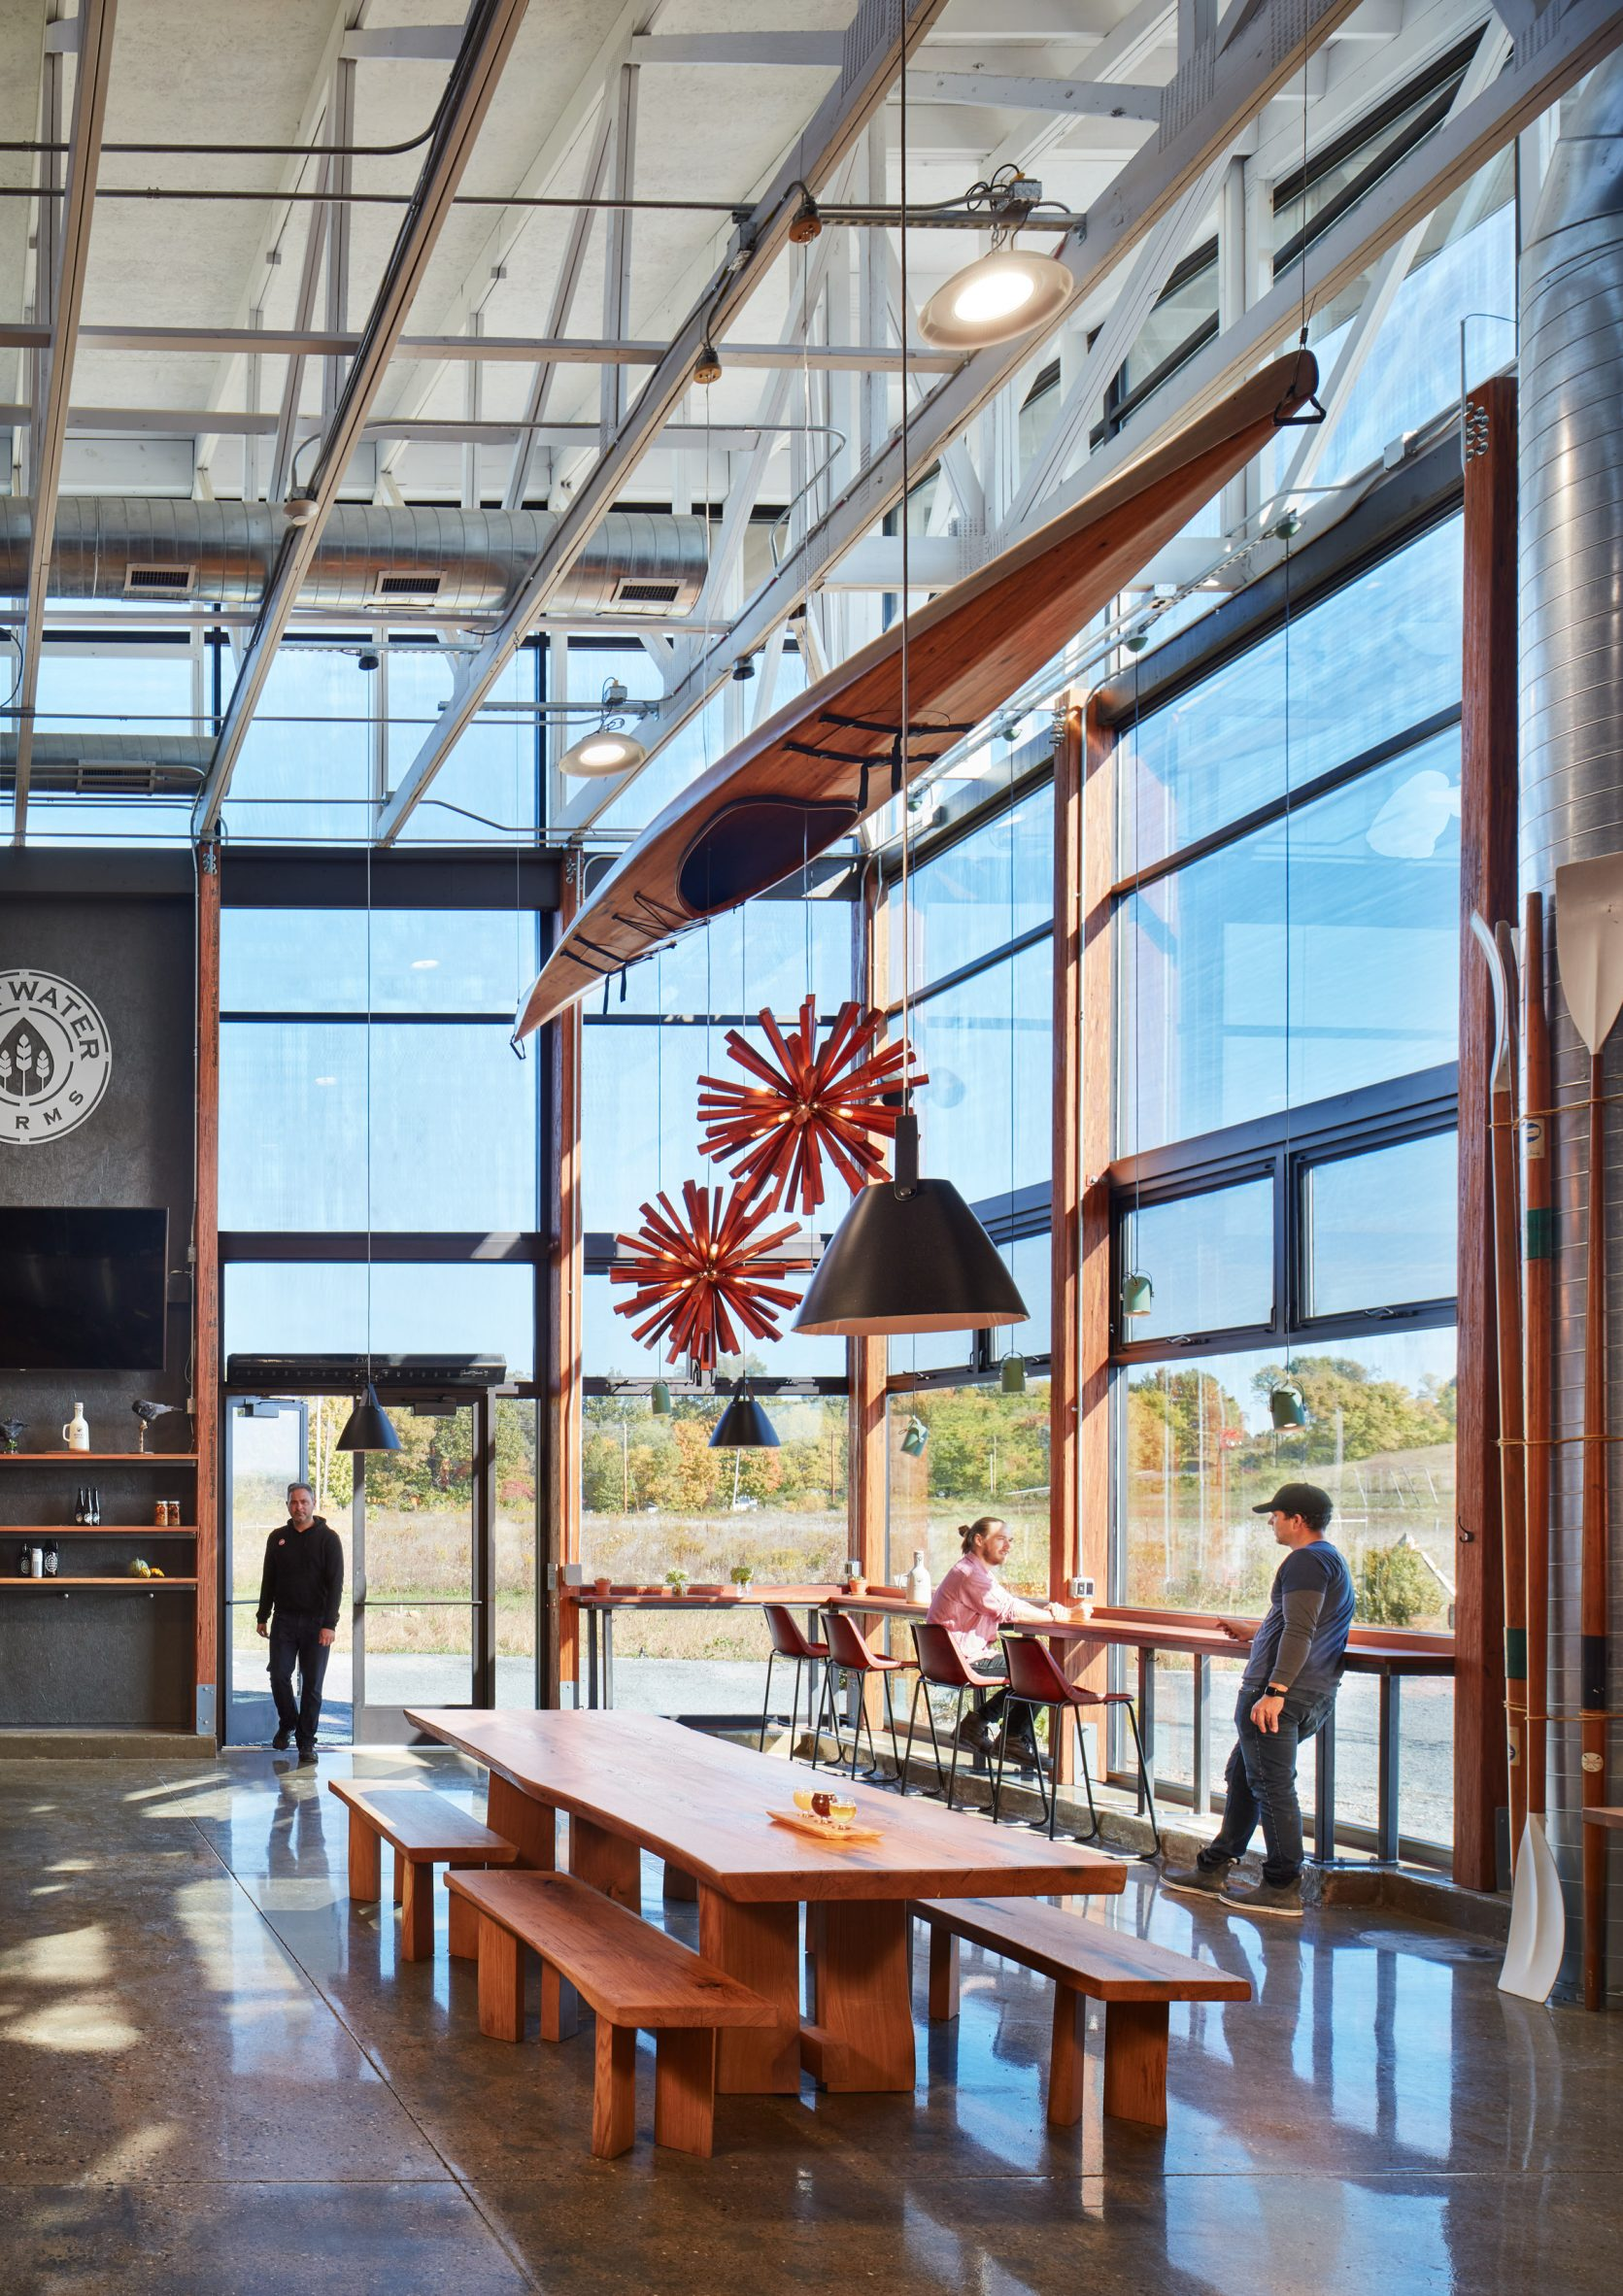 Moss included a tasting room in the project